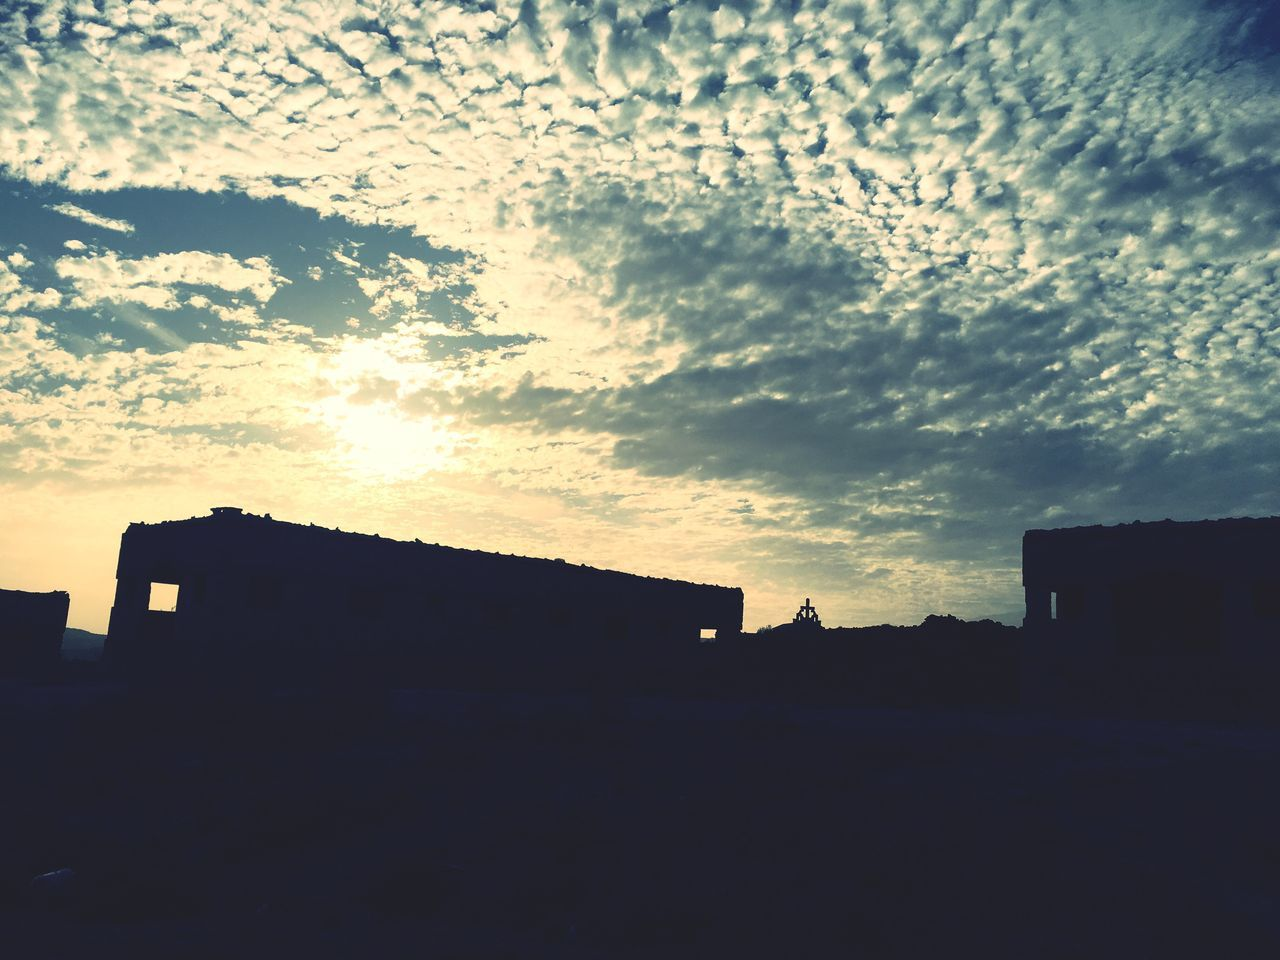 Building Exterior Built Structure Architecture Silhouette Sky Sunset No People House Outdoors Cloud - Sky Nature Day